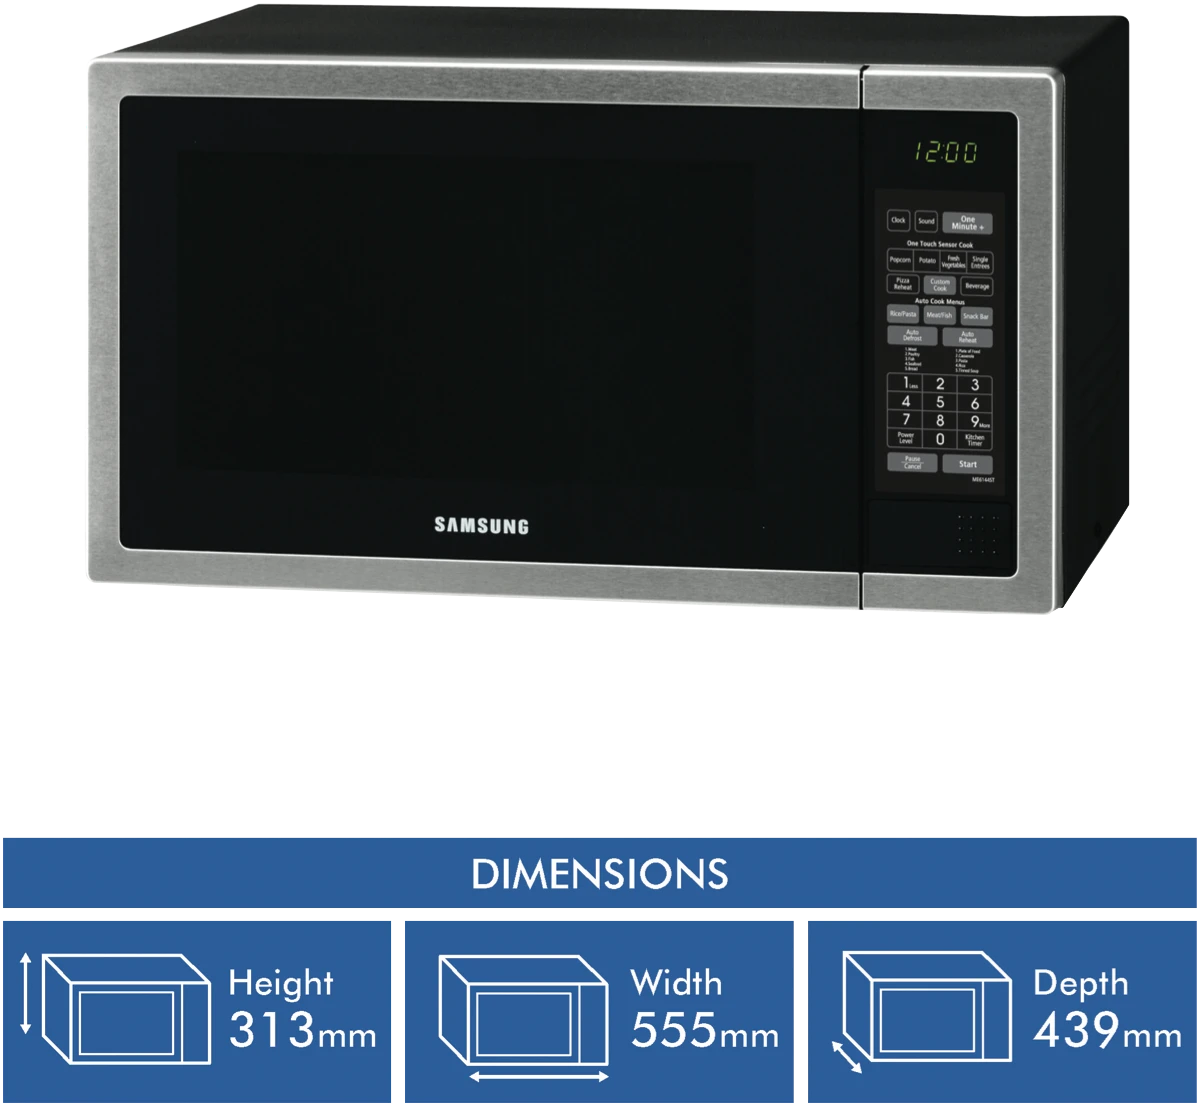 samsung40l 1000w stainless steel microwave